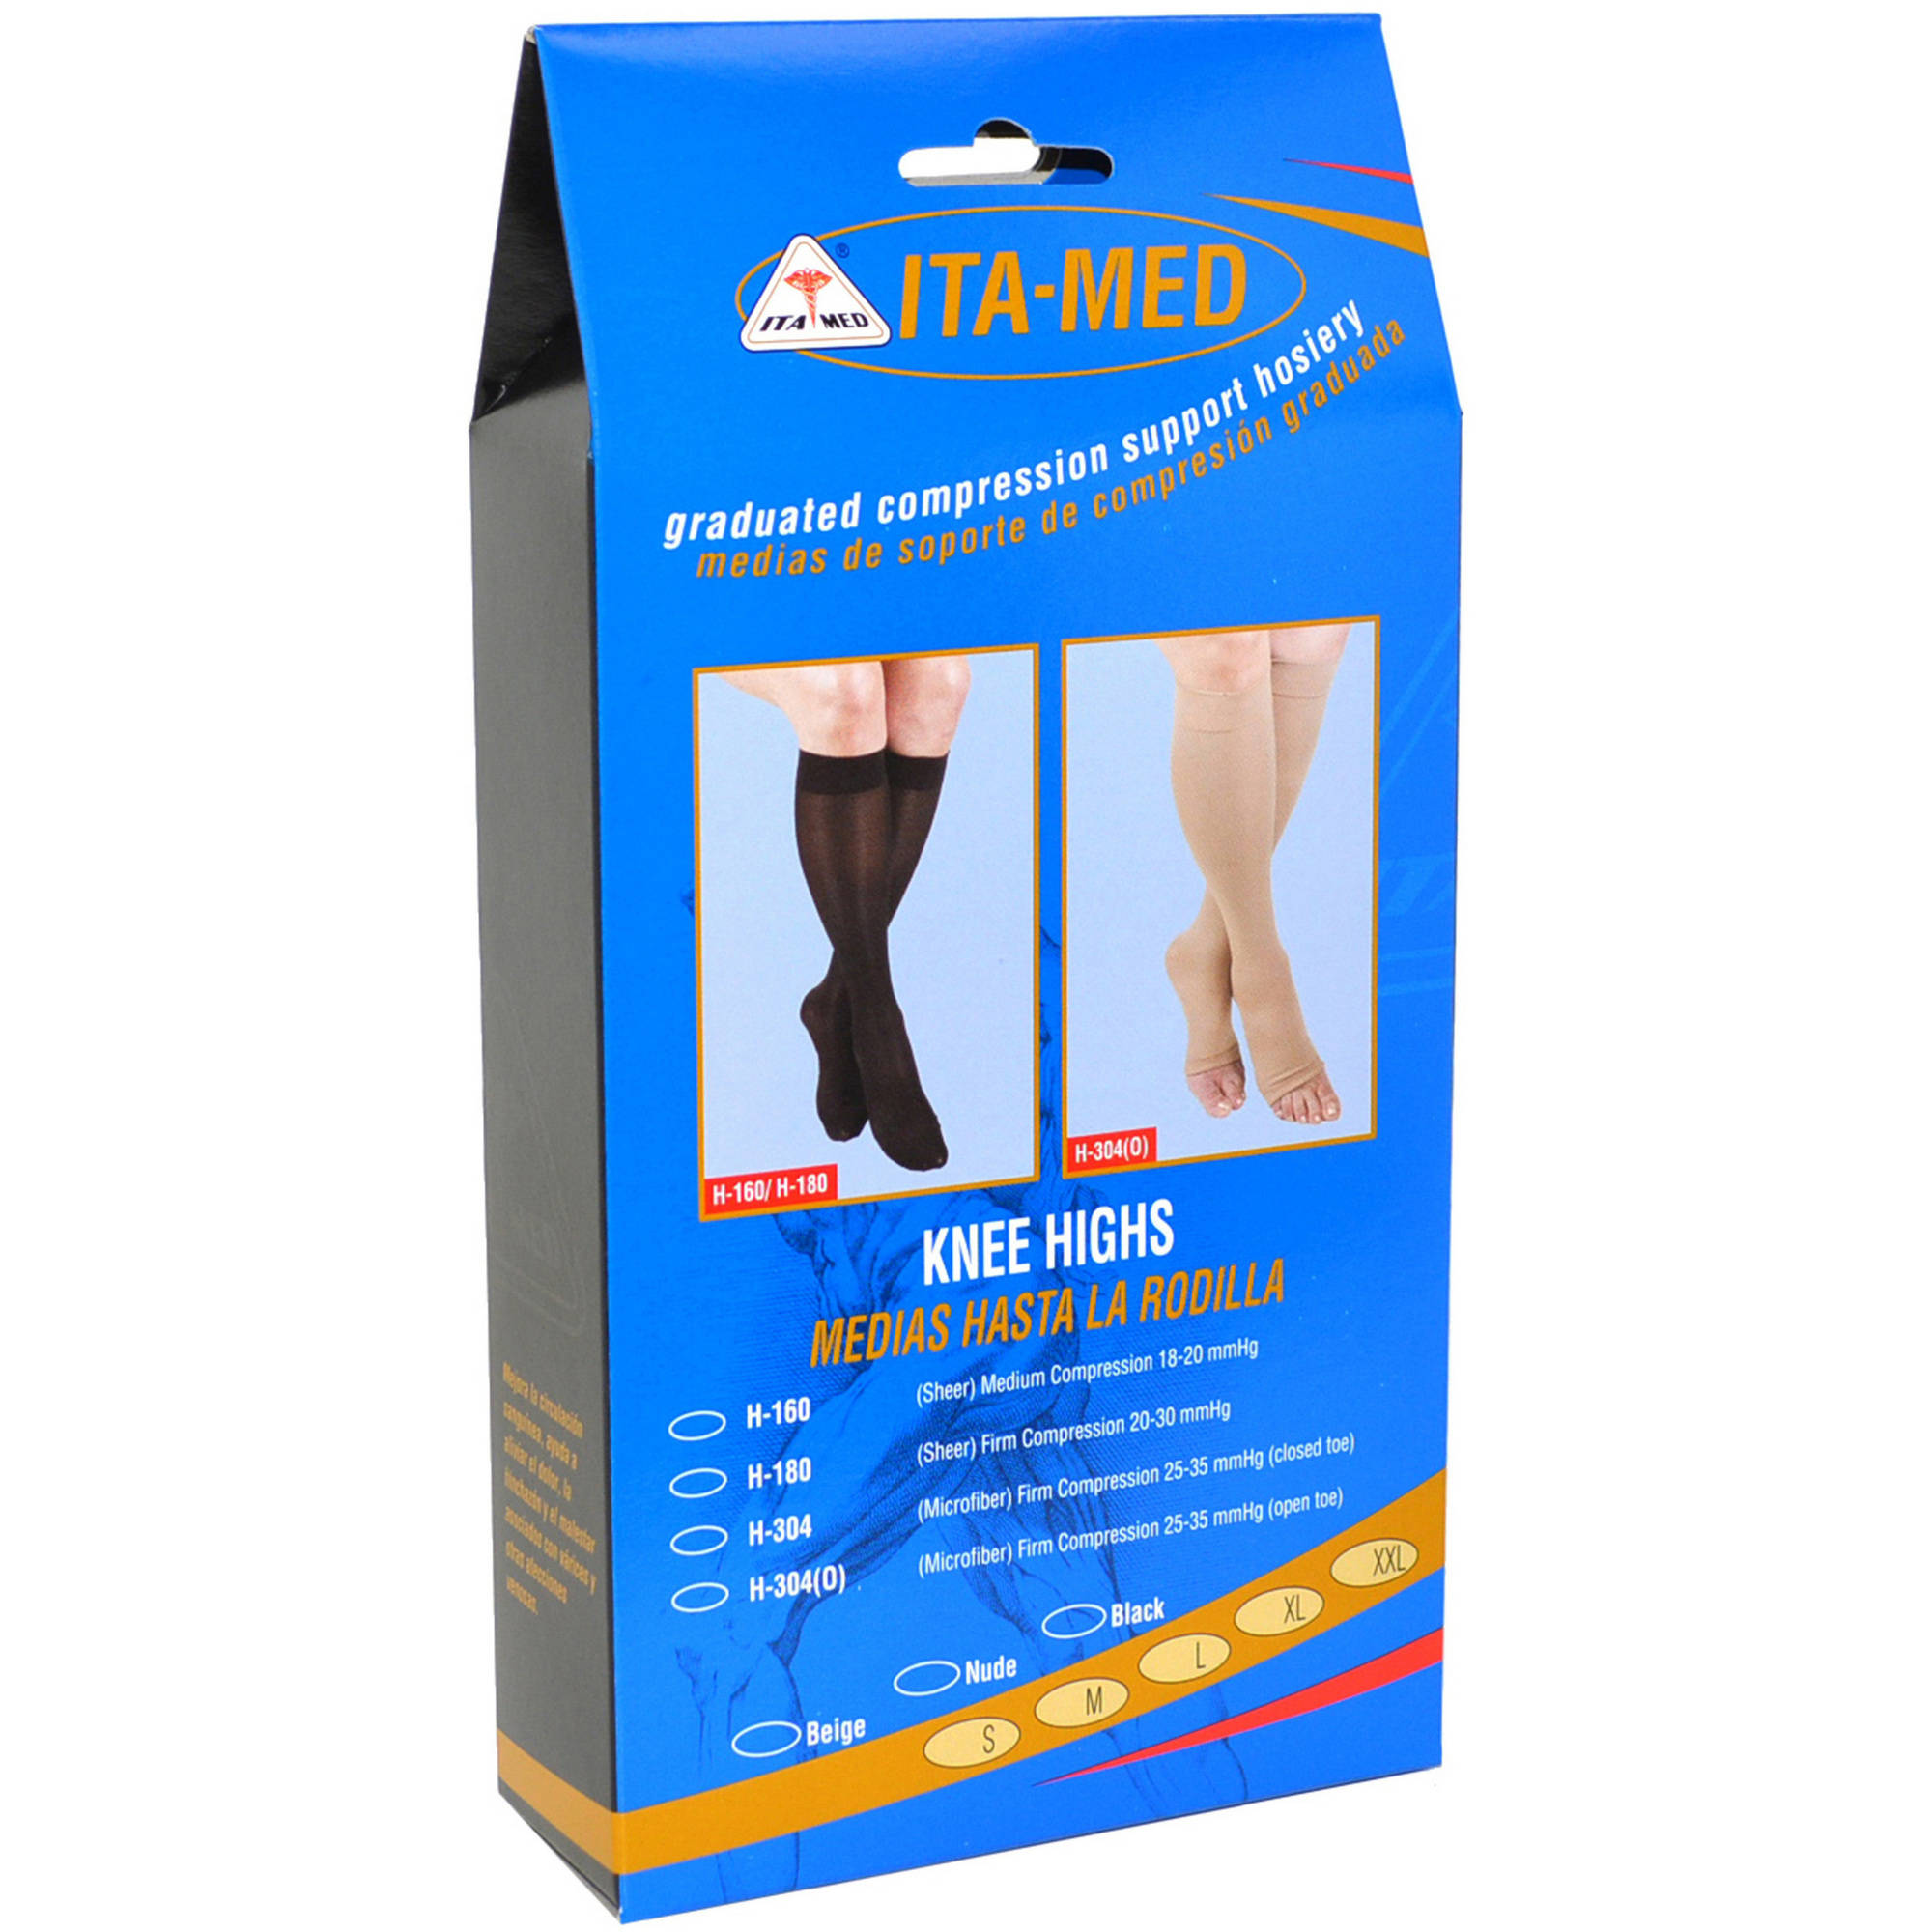 ITA-MED Sheer Knee Highs - Compression (20-22 mmHg): H-160